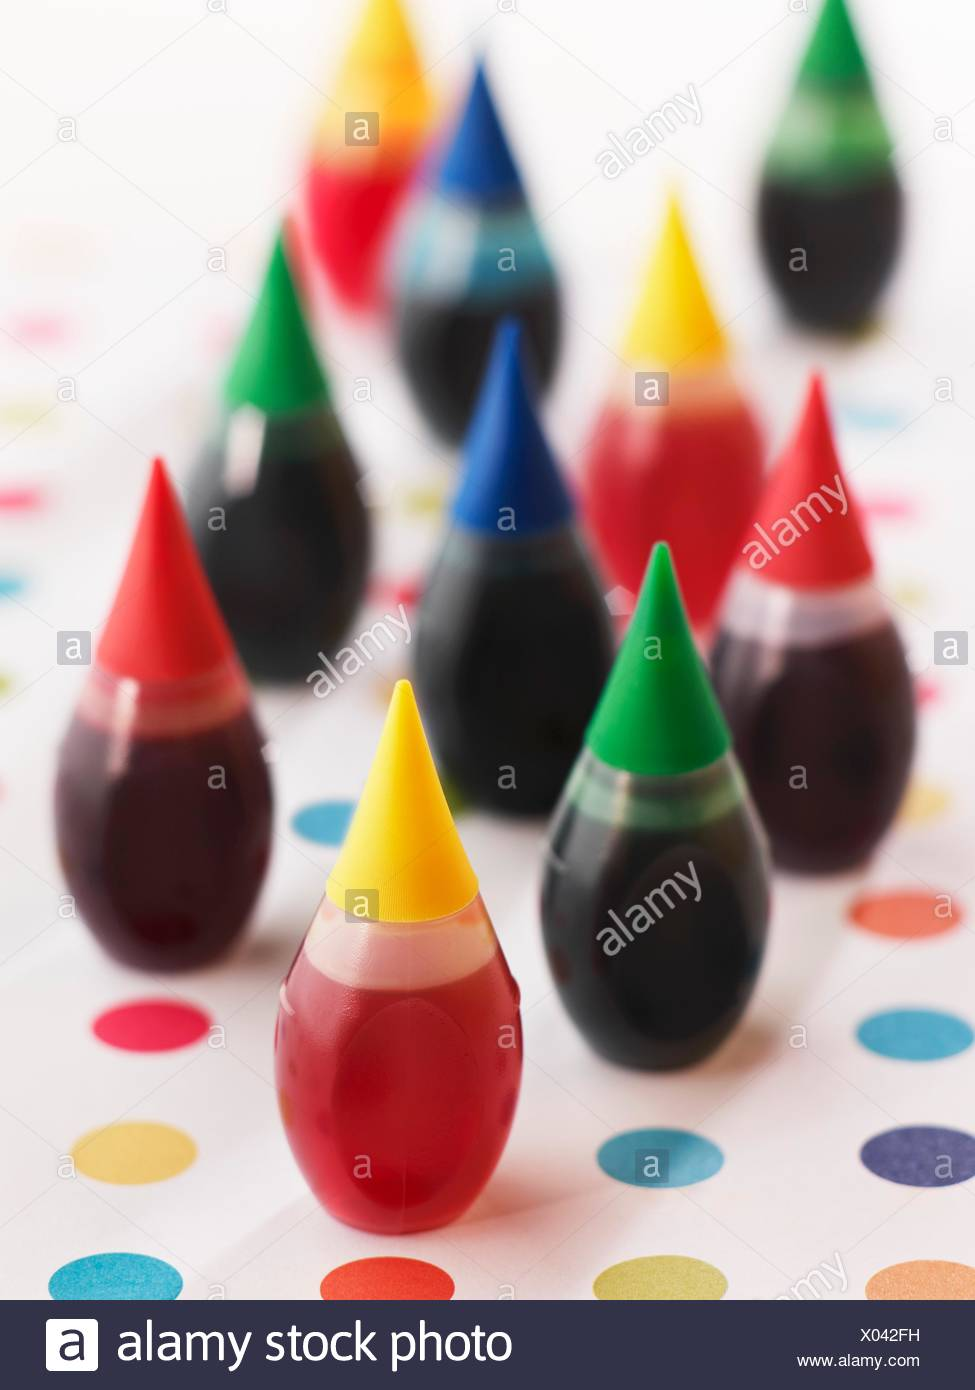 Food Coloring Bottle Stock Photos & Food Coloring Bottle Stock ...